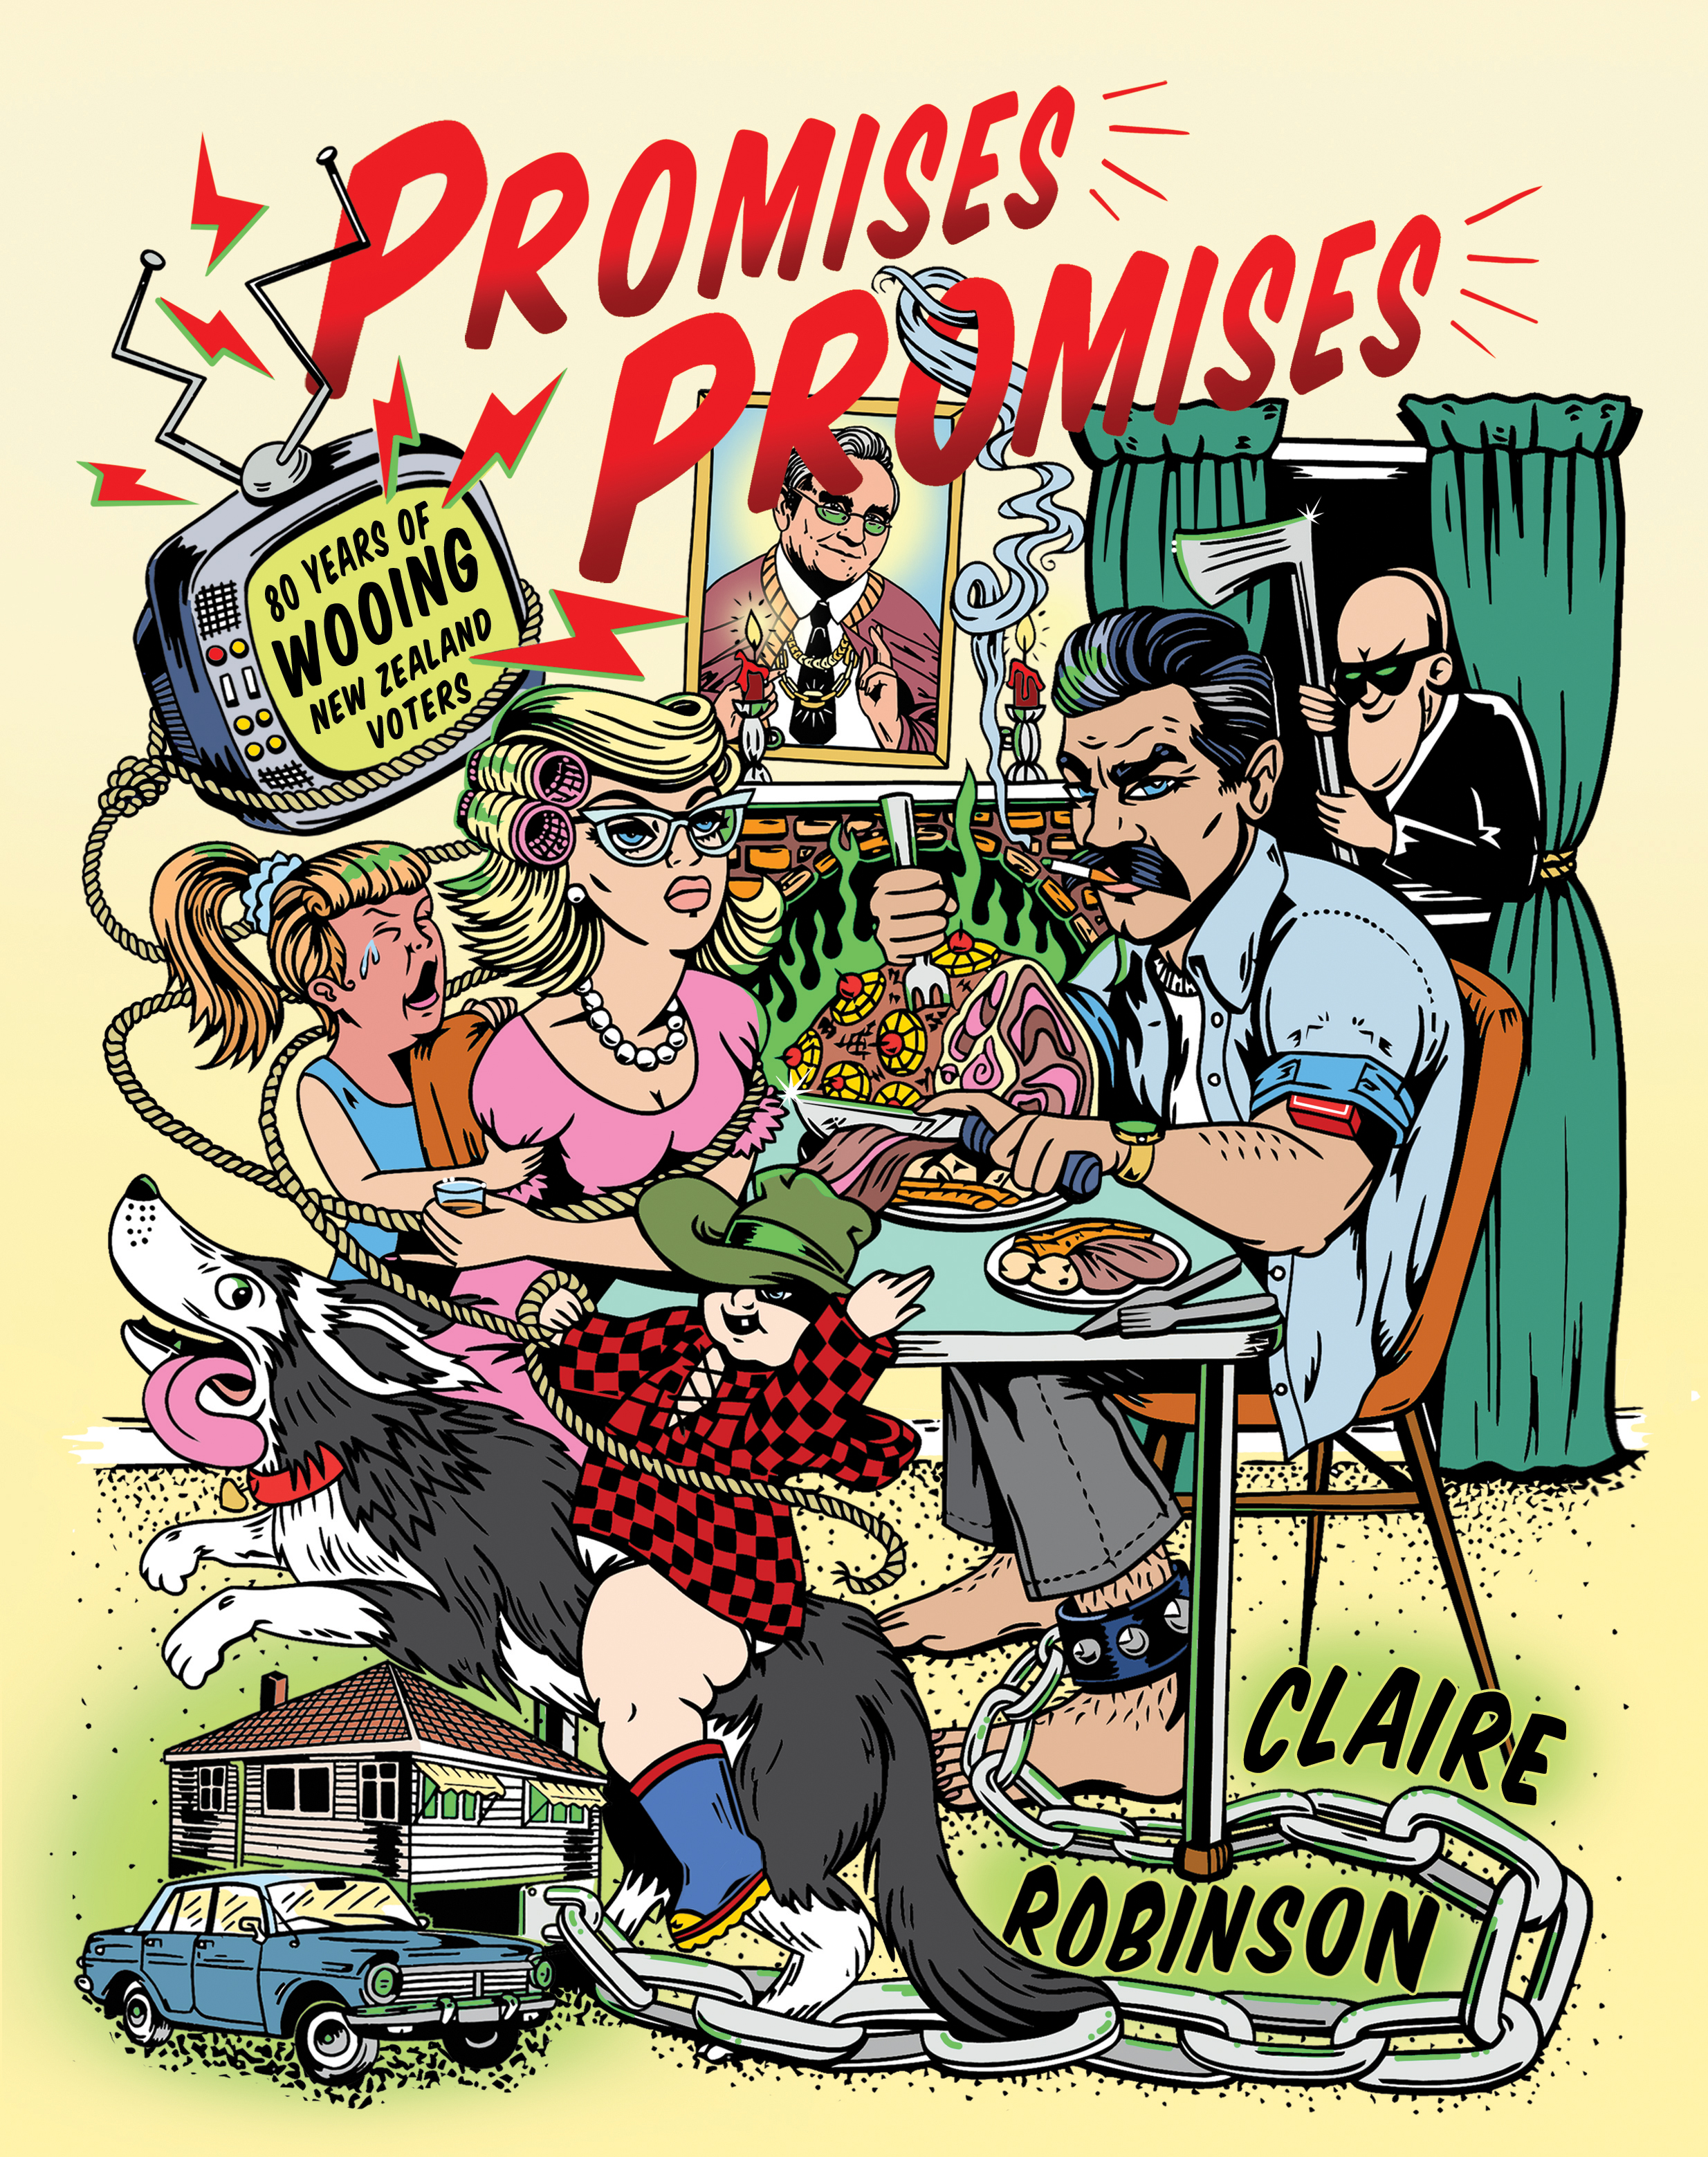 Launch | Promises Promises: 80 Years of Wooing New Zealand Voters by Claire Robinson